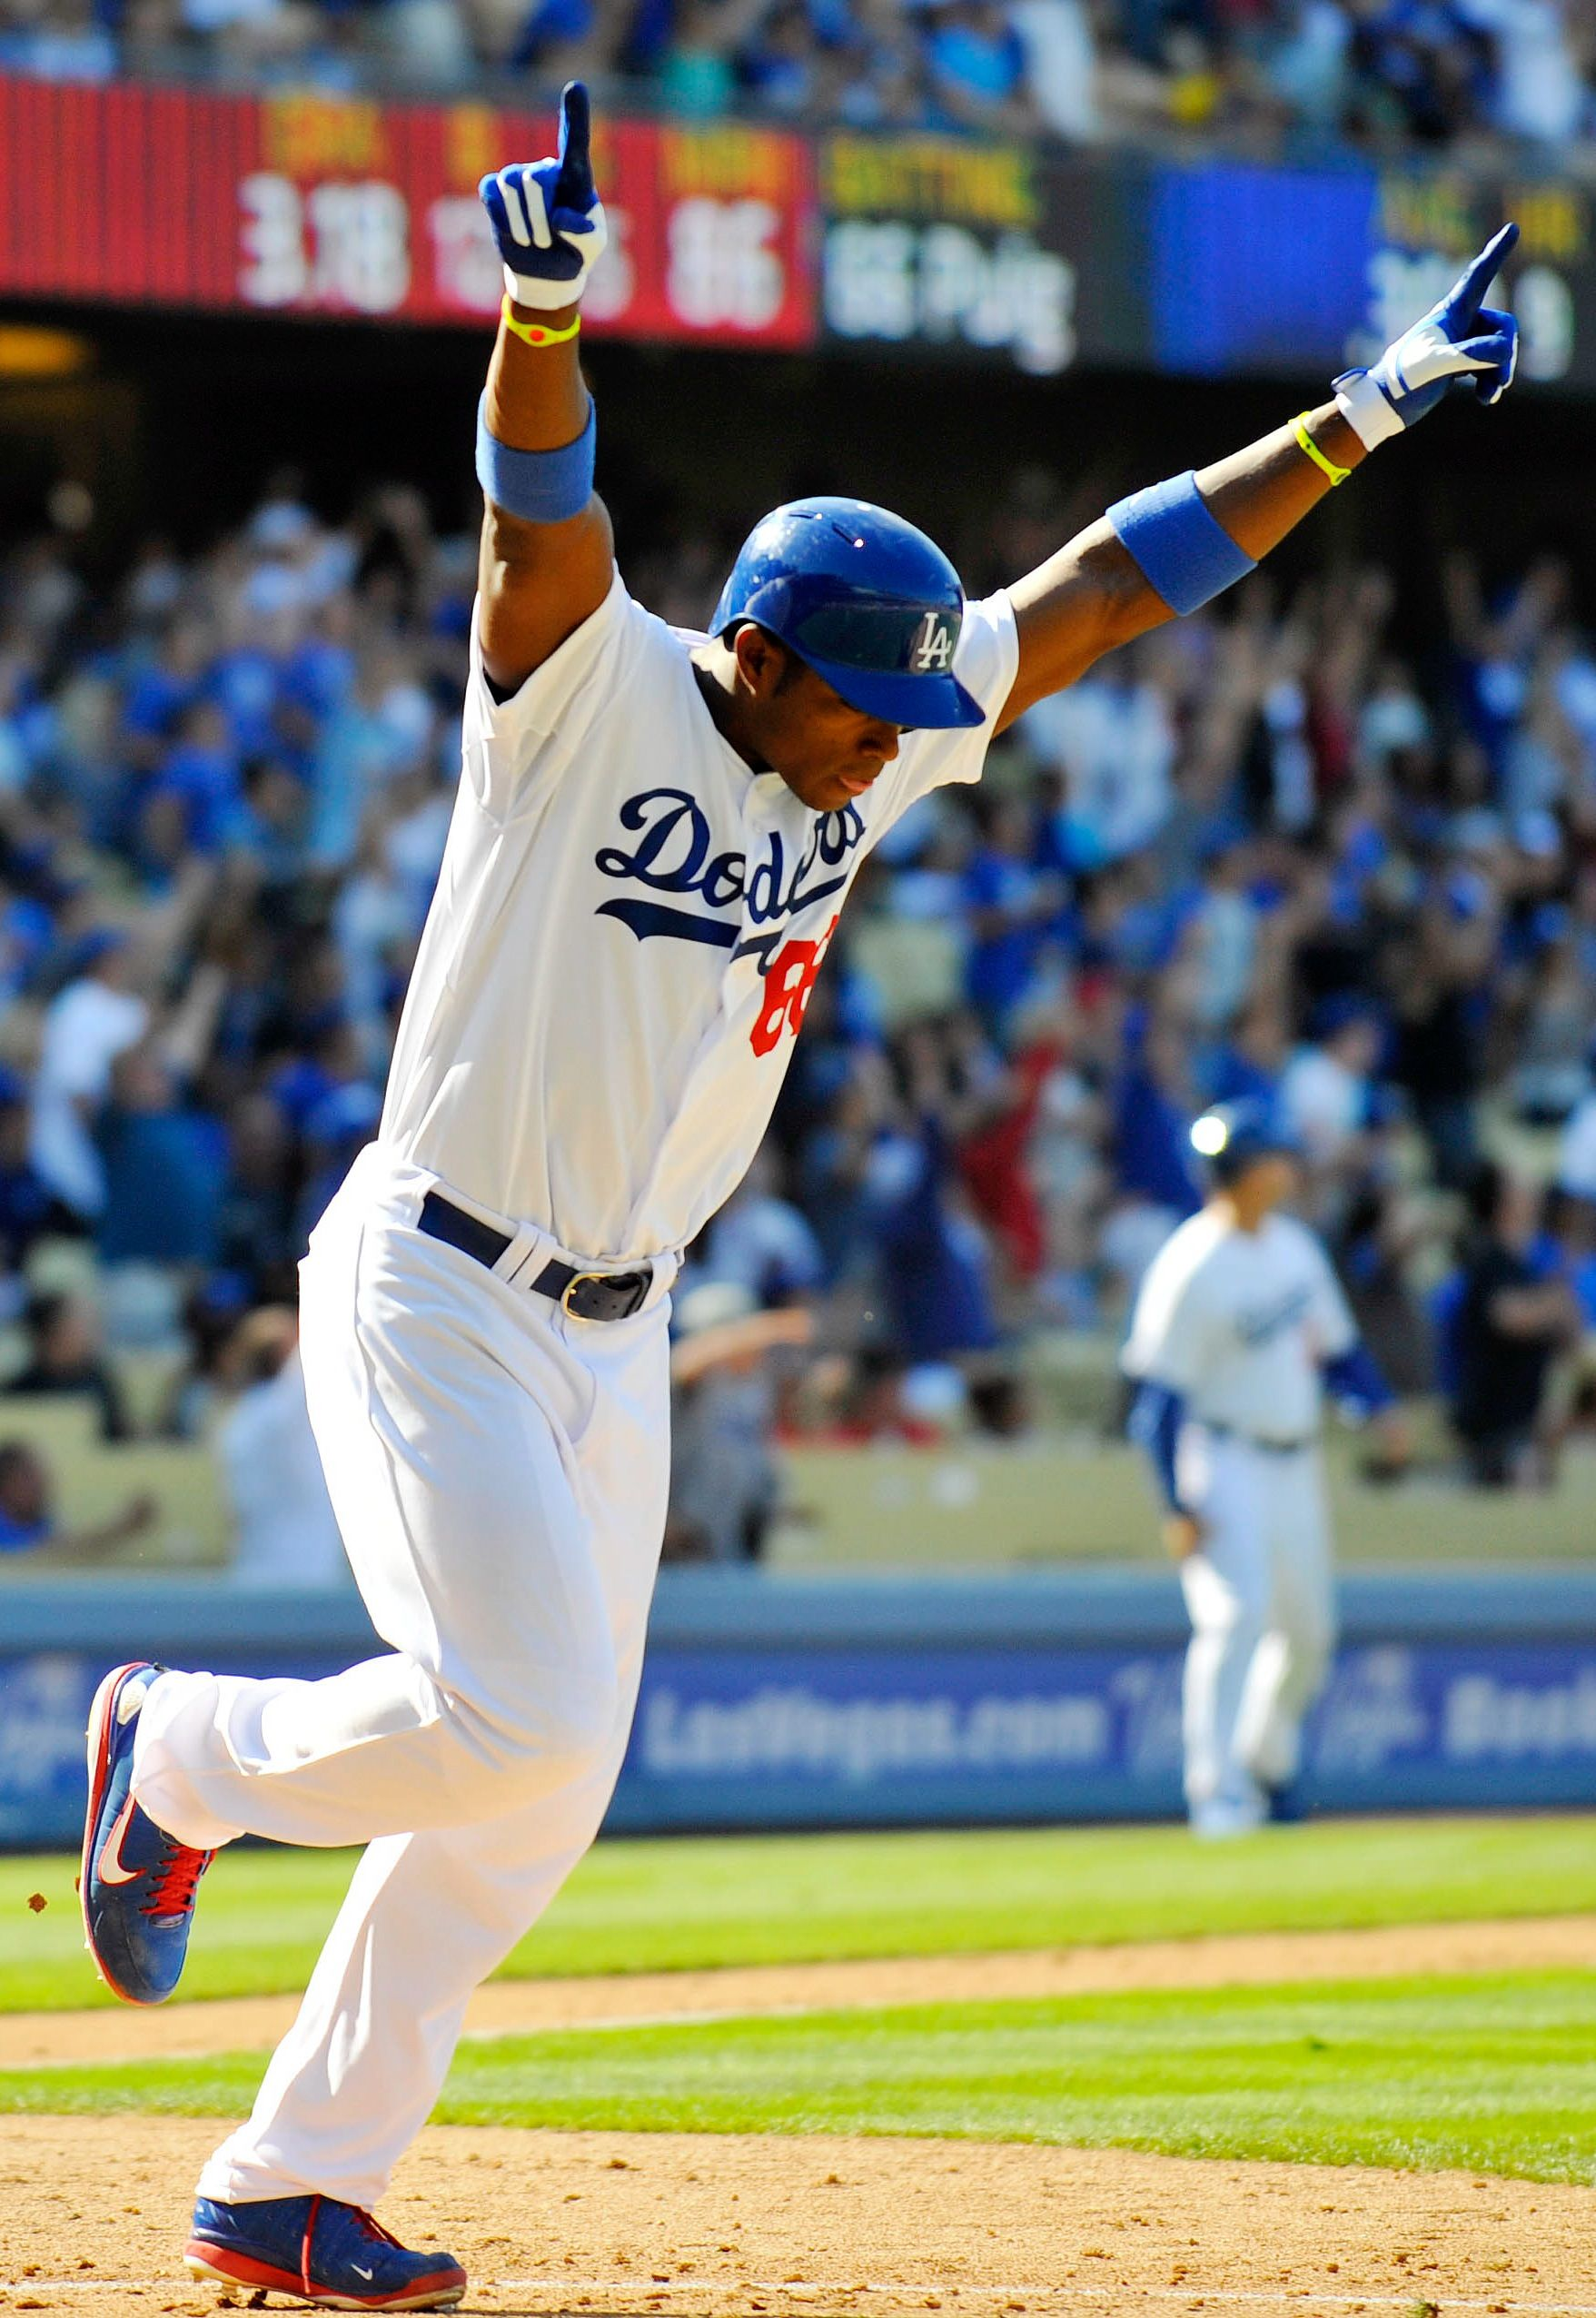 Pin By Eseats Com Tickets Events Worl On Yasiel Puig Dodgers Baseball Photography Dodgers Baseball